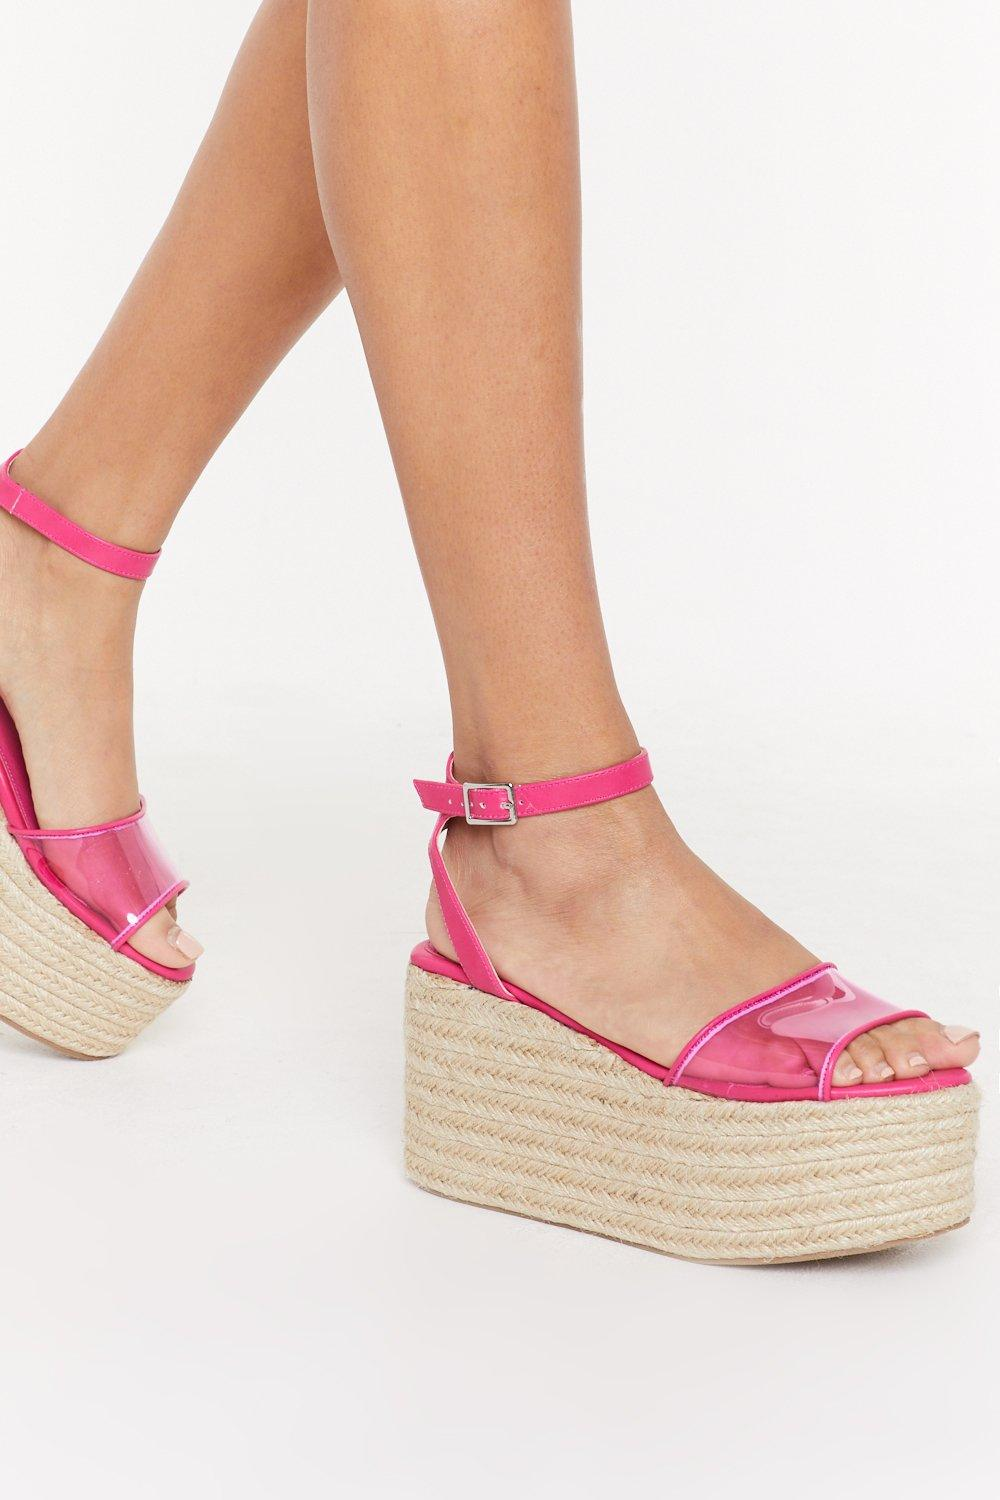 ee4e560be01 Let's Clear Things Up Perspex Platform Sandals   Shop Clothes at Nasty Gal!